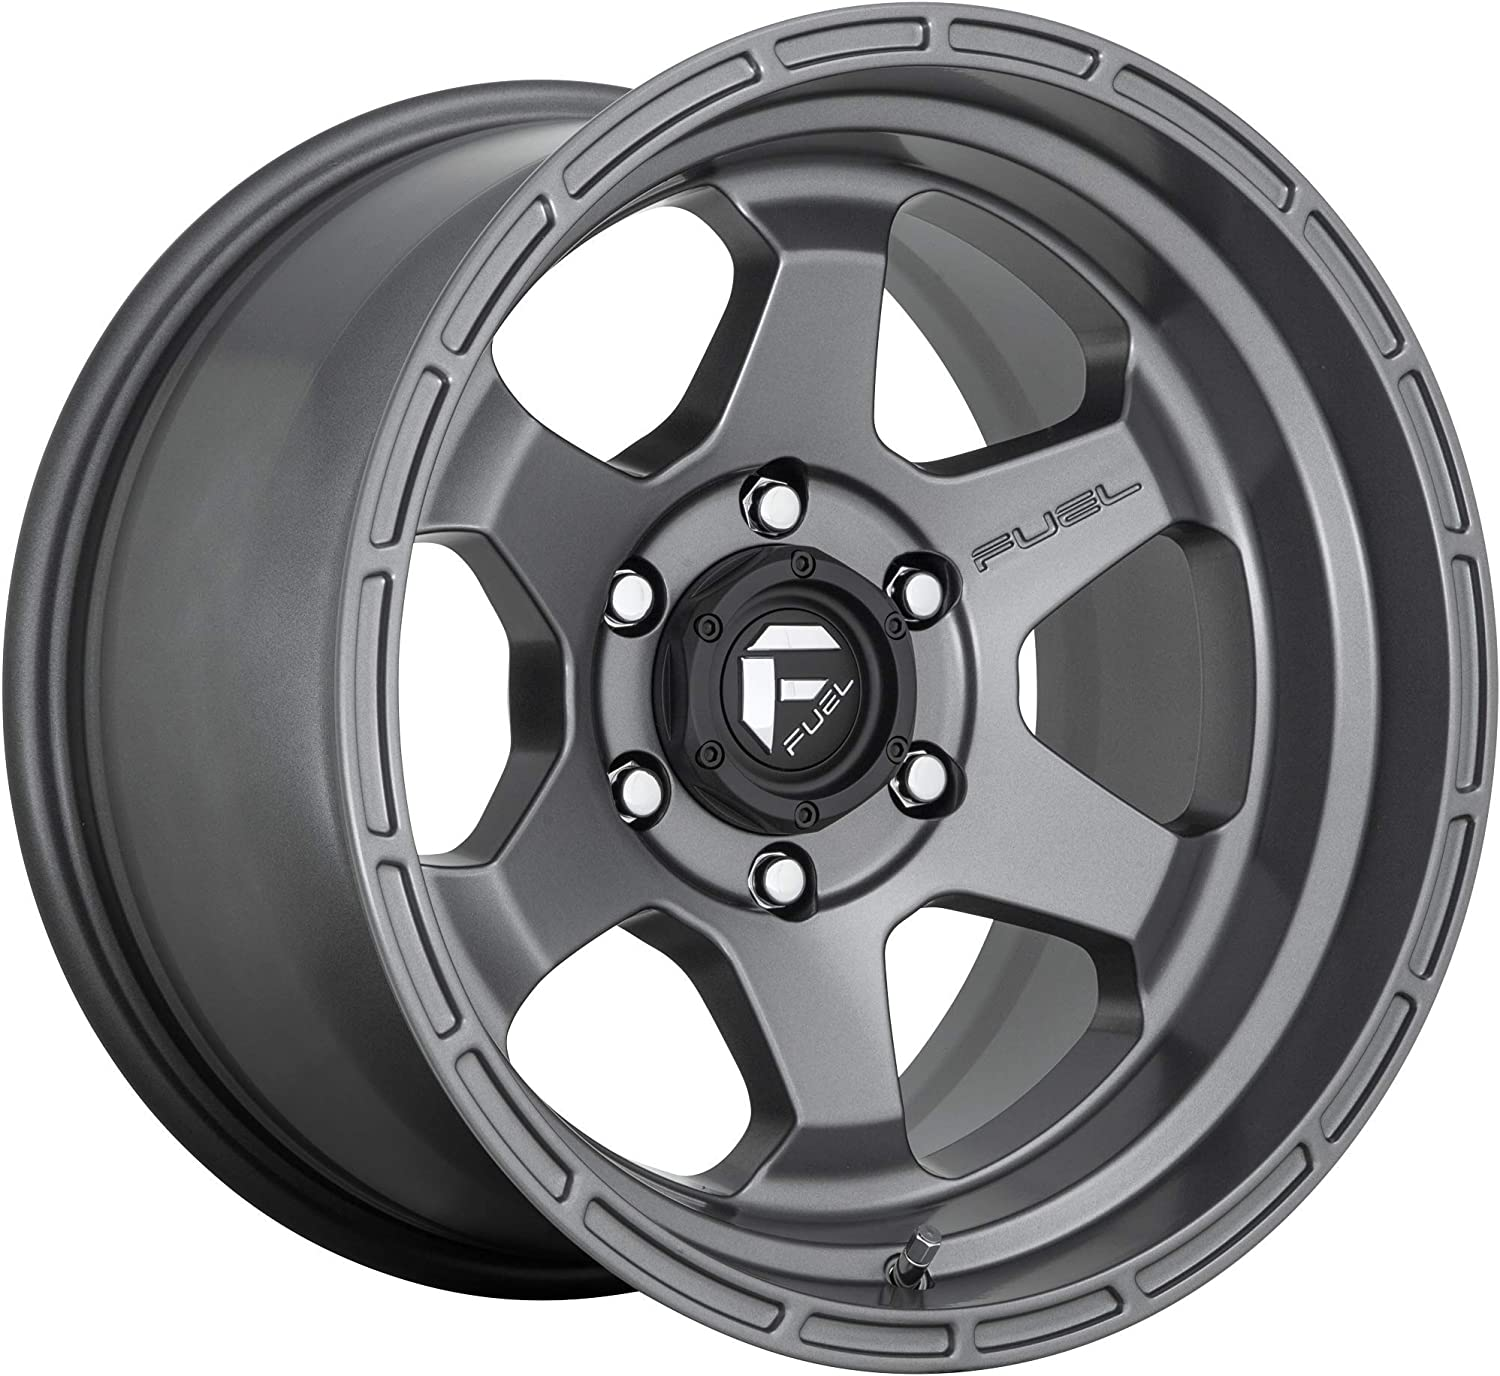 Outstanding Deal on Wheels D665 18X9 6X135 Wheel Challenge the lowest price of Japan ☆ MT-GNMTL AFTERMARKET -12MM